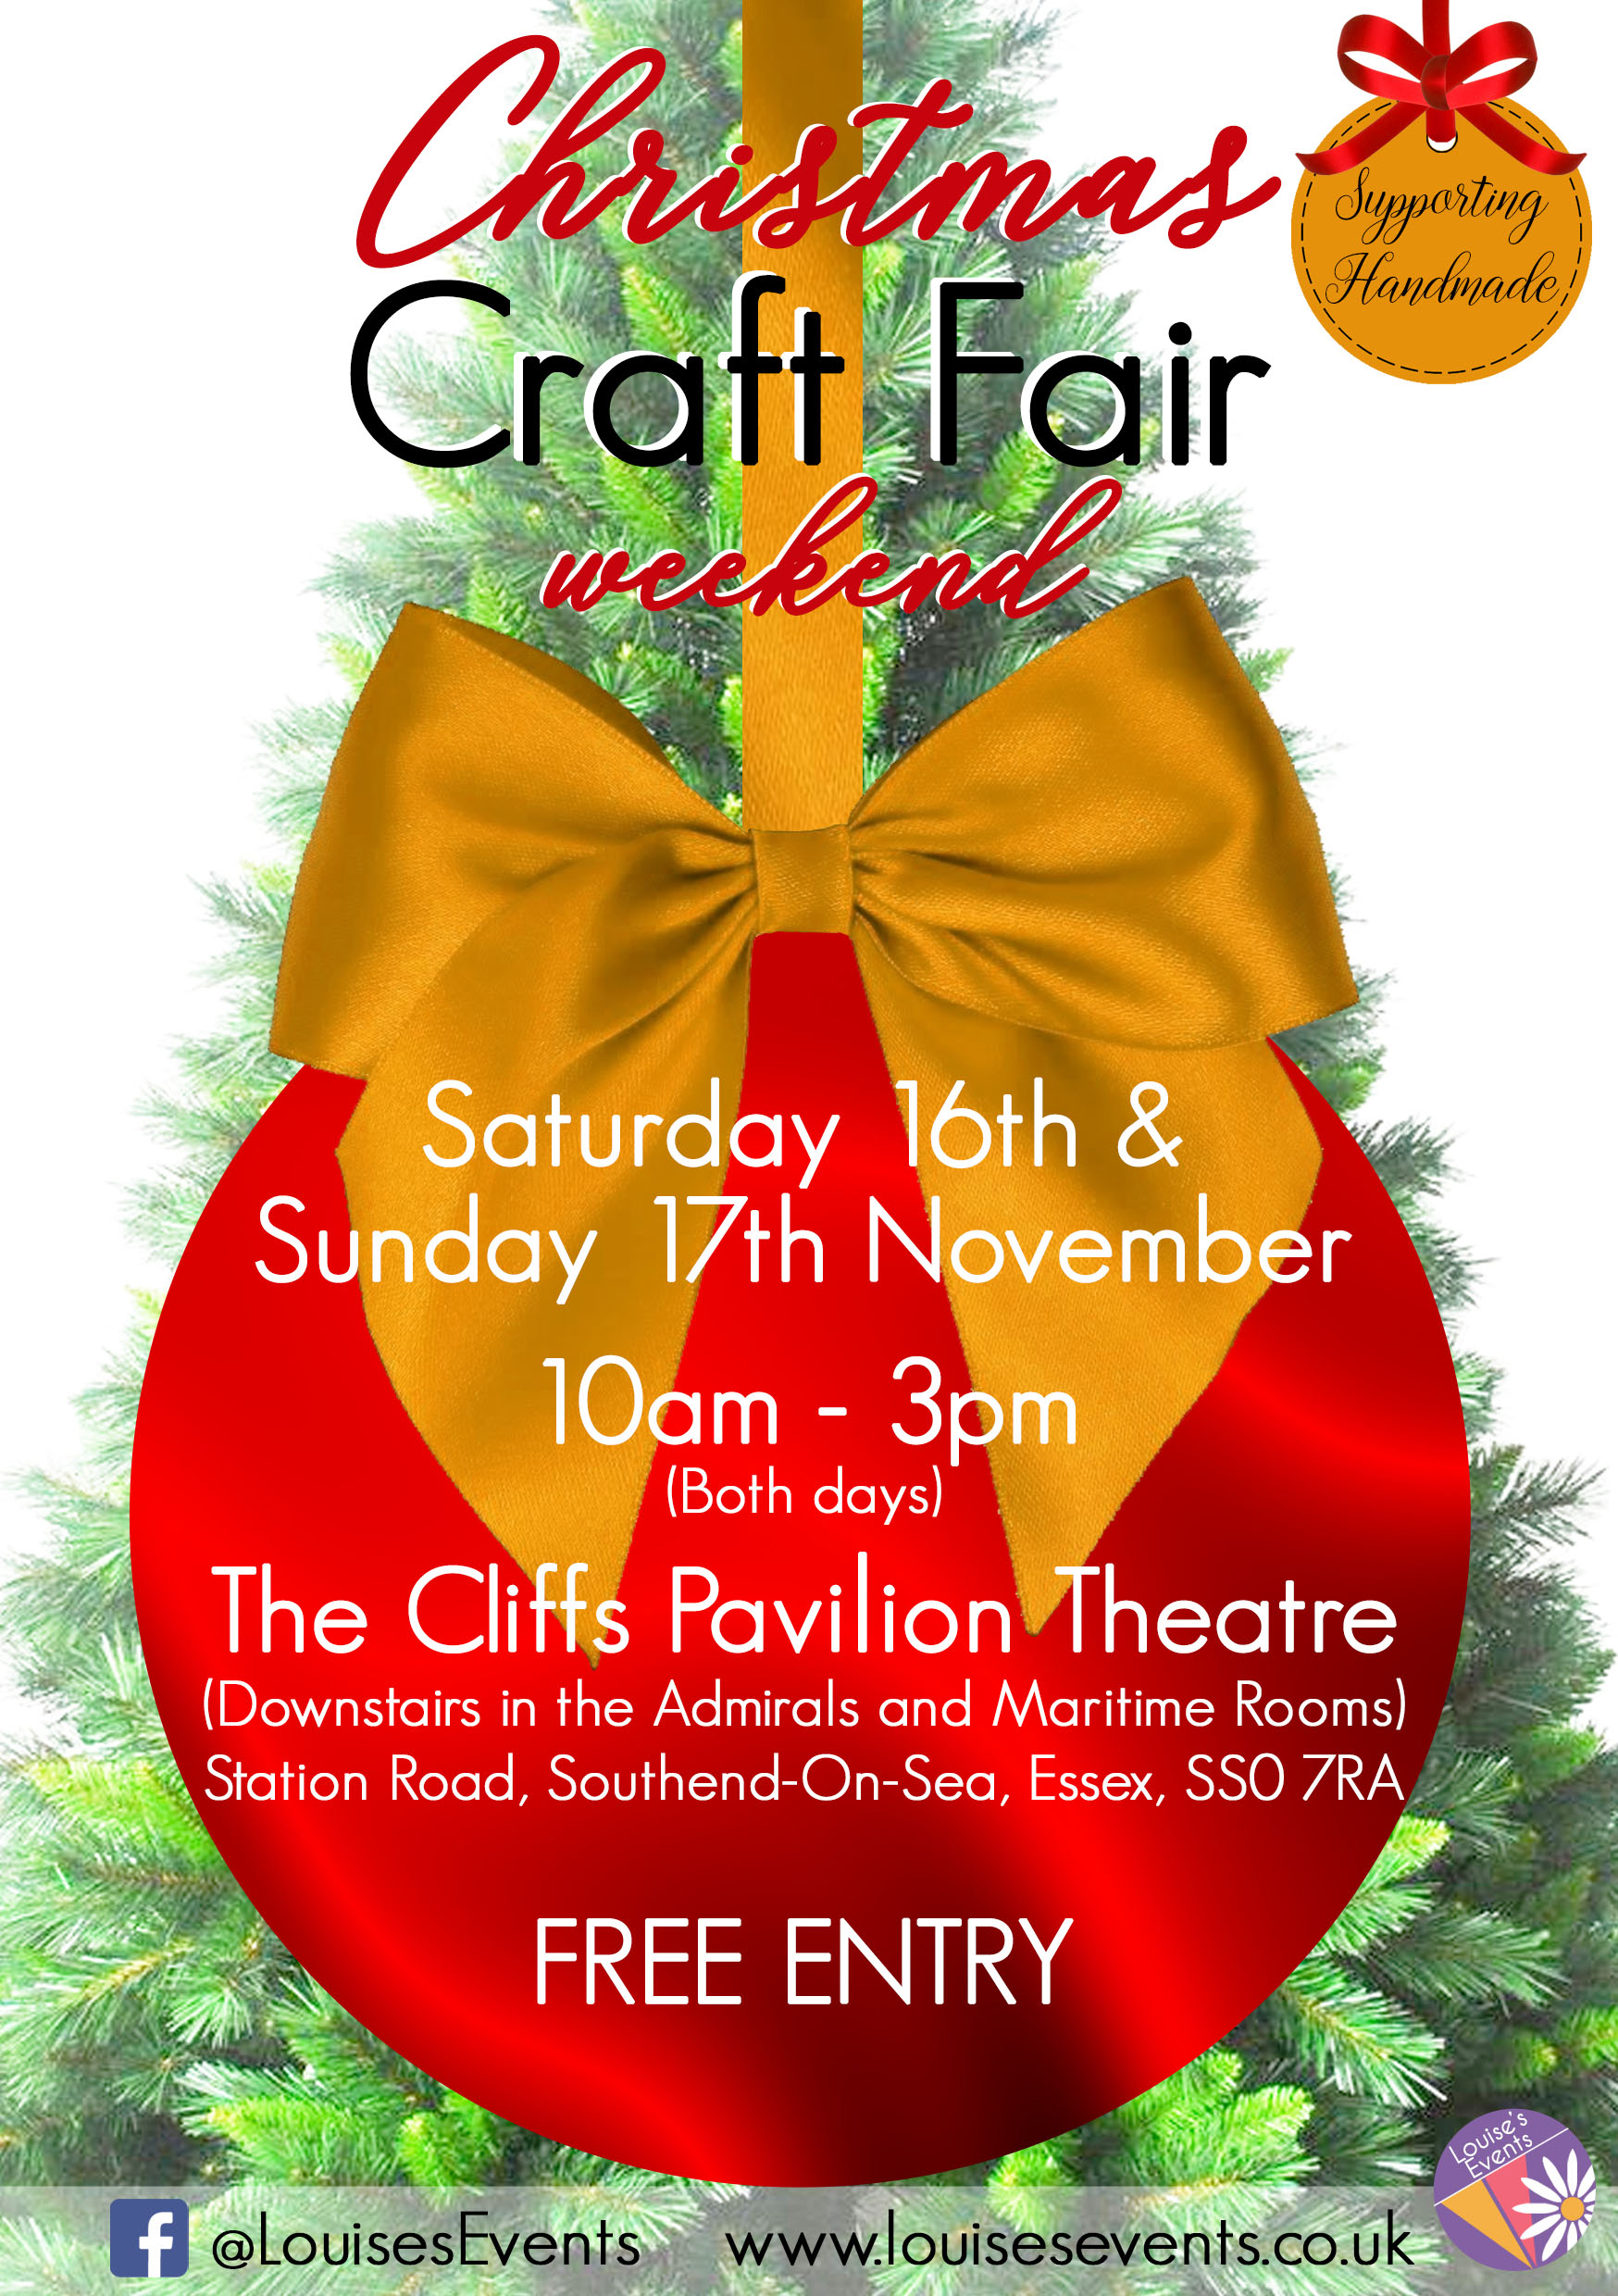 Christmas Craft Fair Weekend